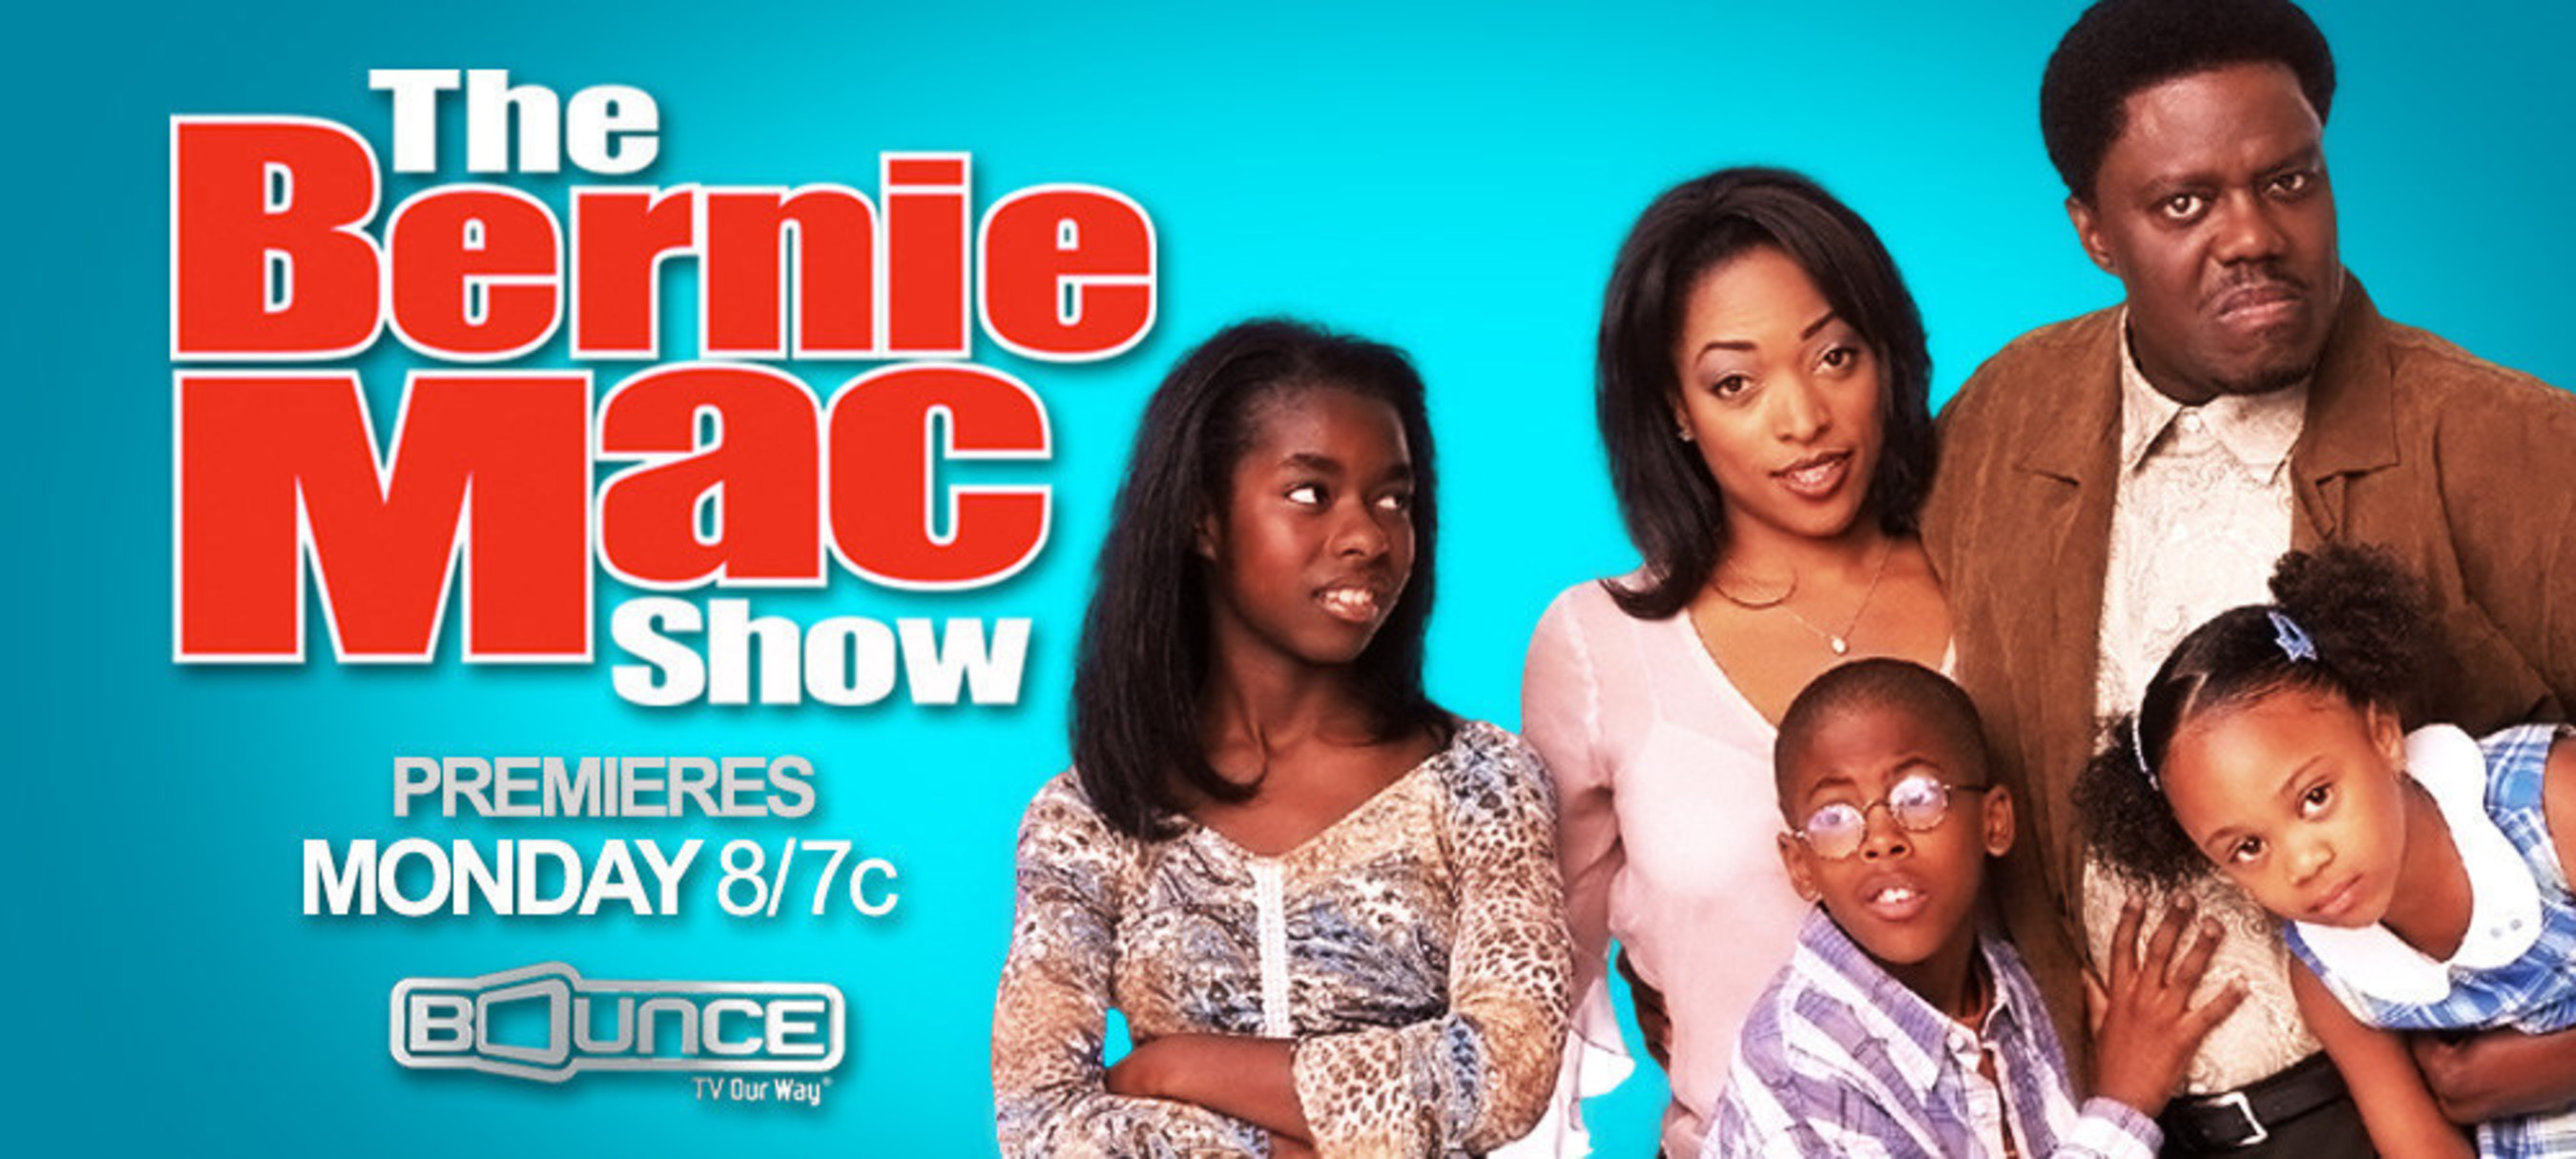 Bounce TV Acquires Rights to The Bernie Mac Show, To Air Series Weeknights 8:00-9:00 pm (ET) Starting June 1